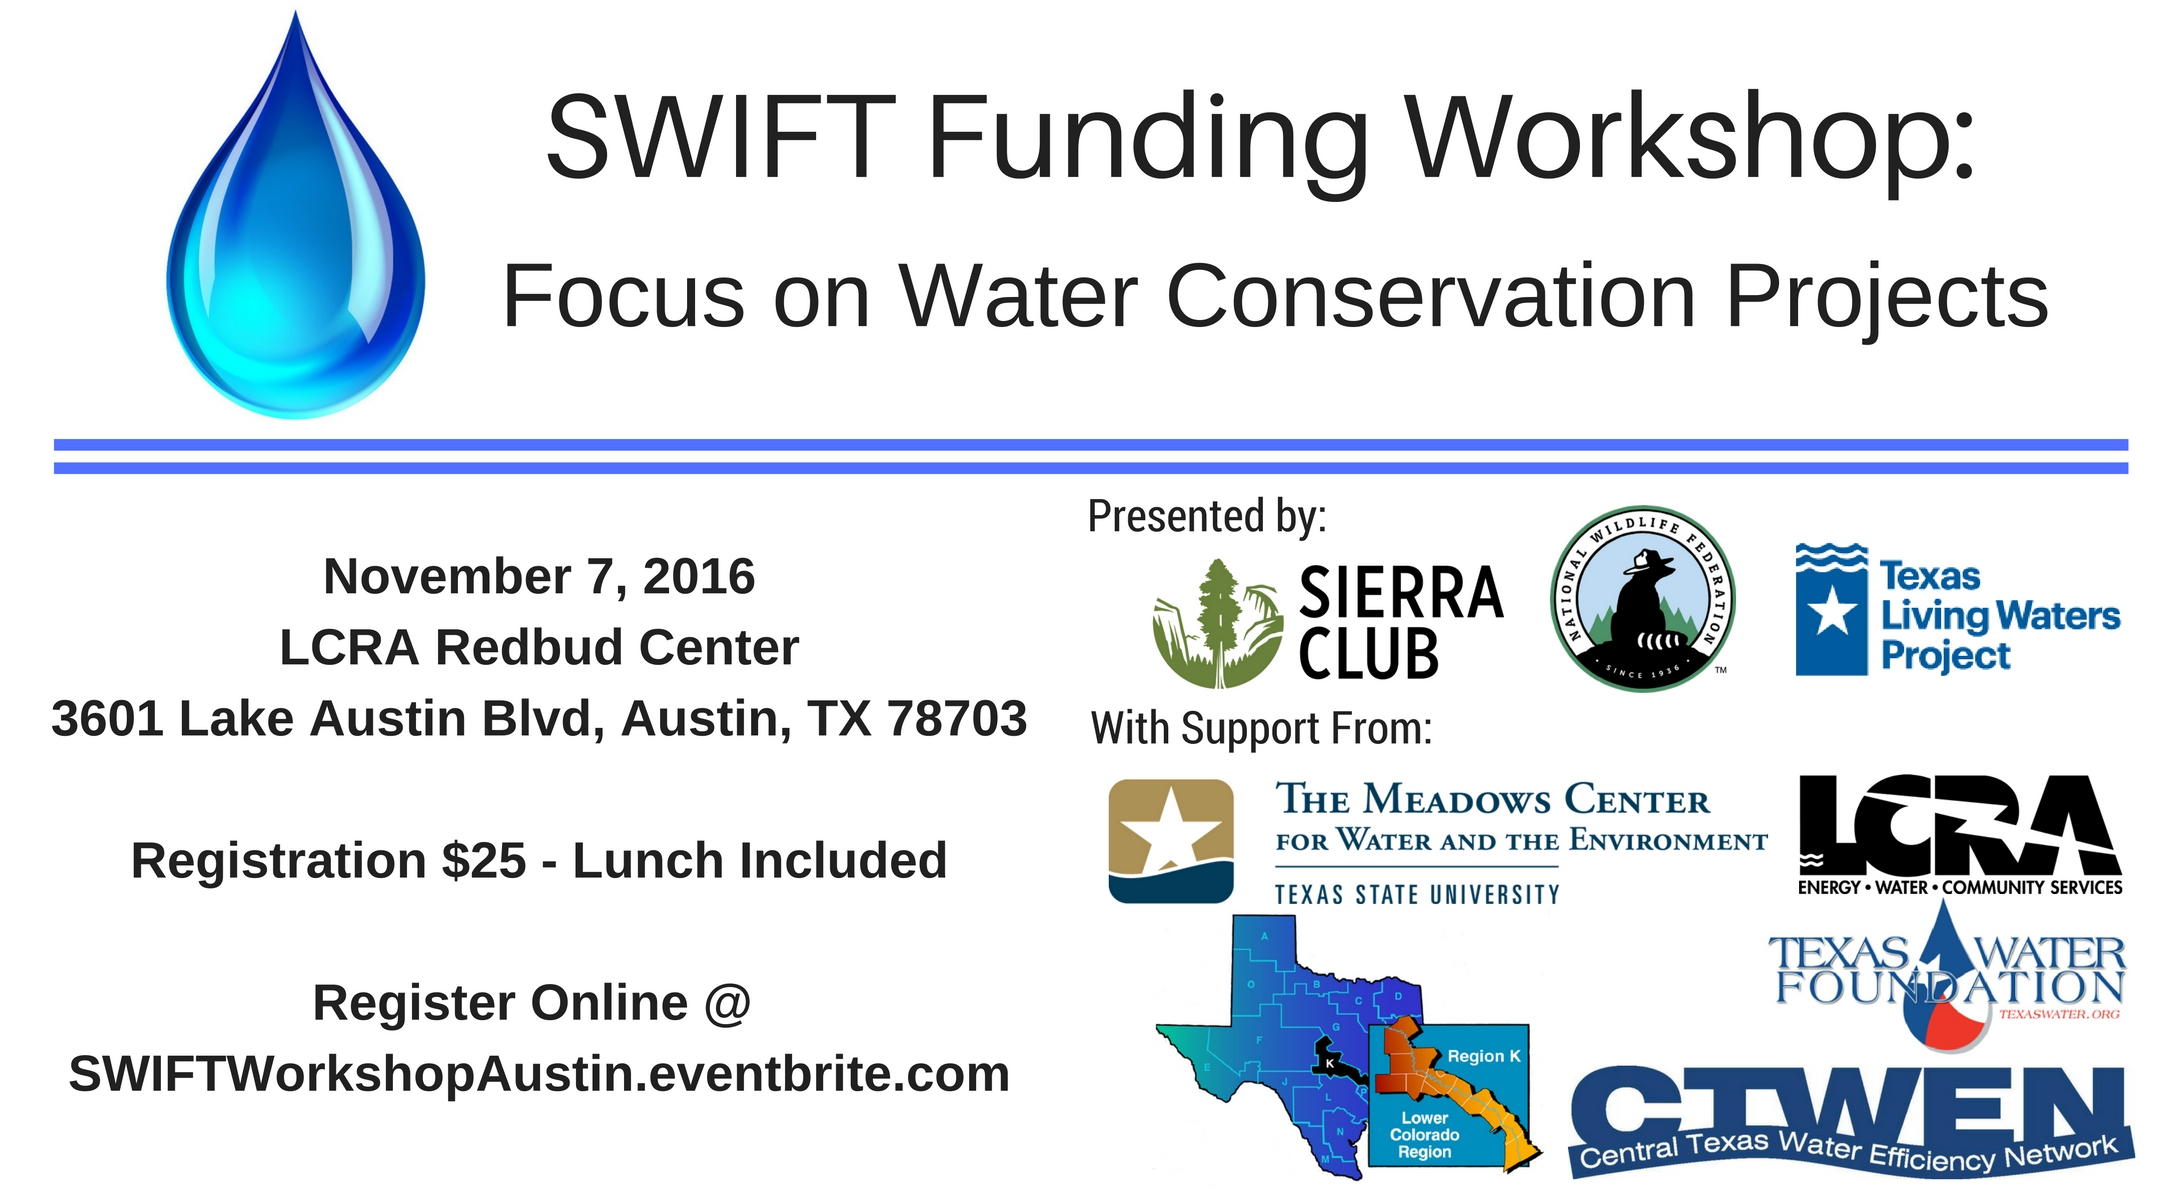 austin-swift-funding-workshop-banner